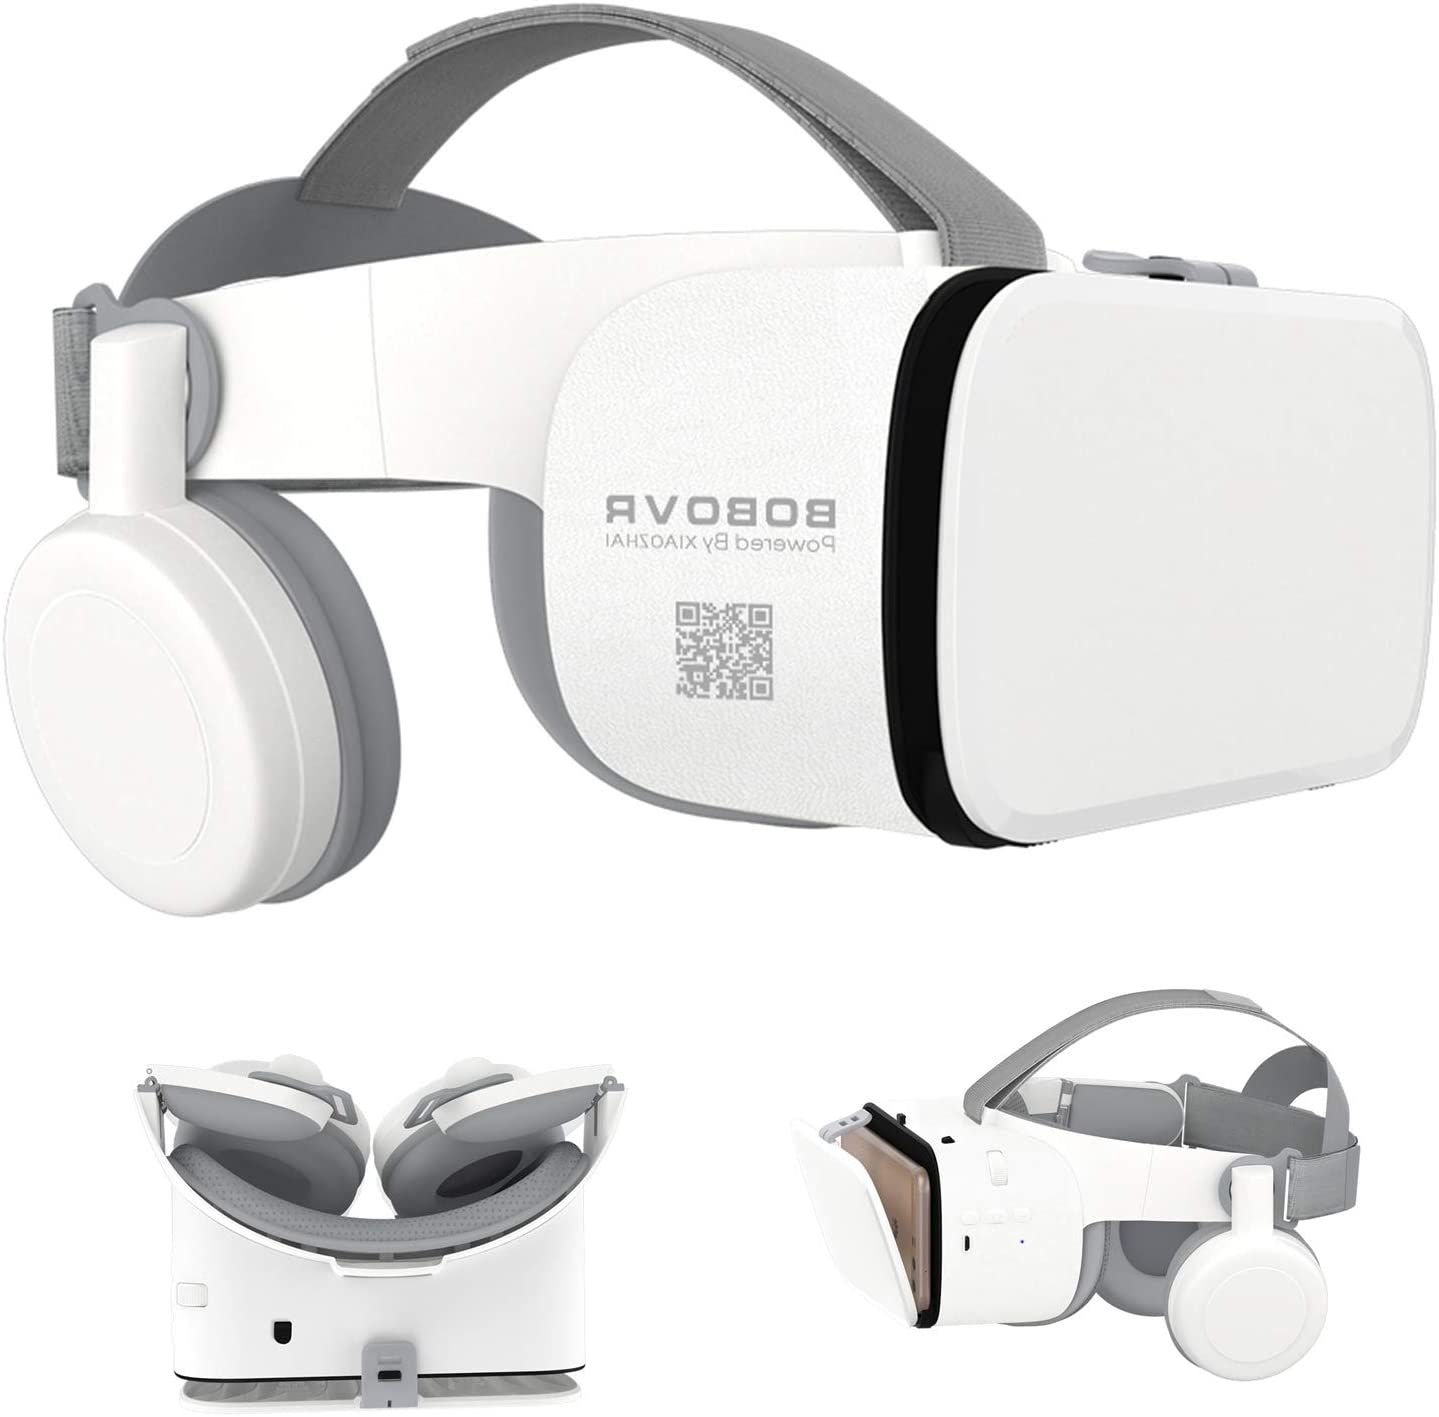 3D Virtual Reality Headset, 3D VR Glasses Viewer with Remote [Bluetooth] for iOS iPhone 12 11 Pro Max Mini X R S 8 7 Samsung Galaxy S10 S9 S8 S7 Edge Note/A 10 9 8 + Other 4.7-6.2